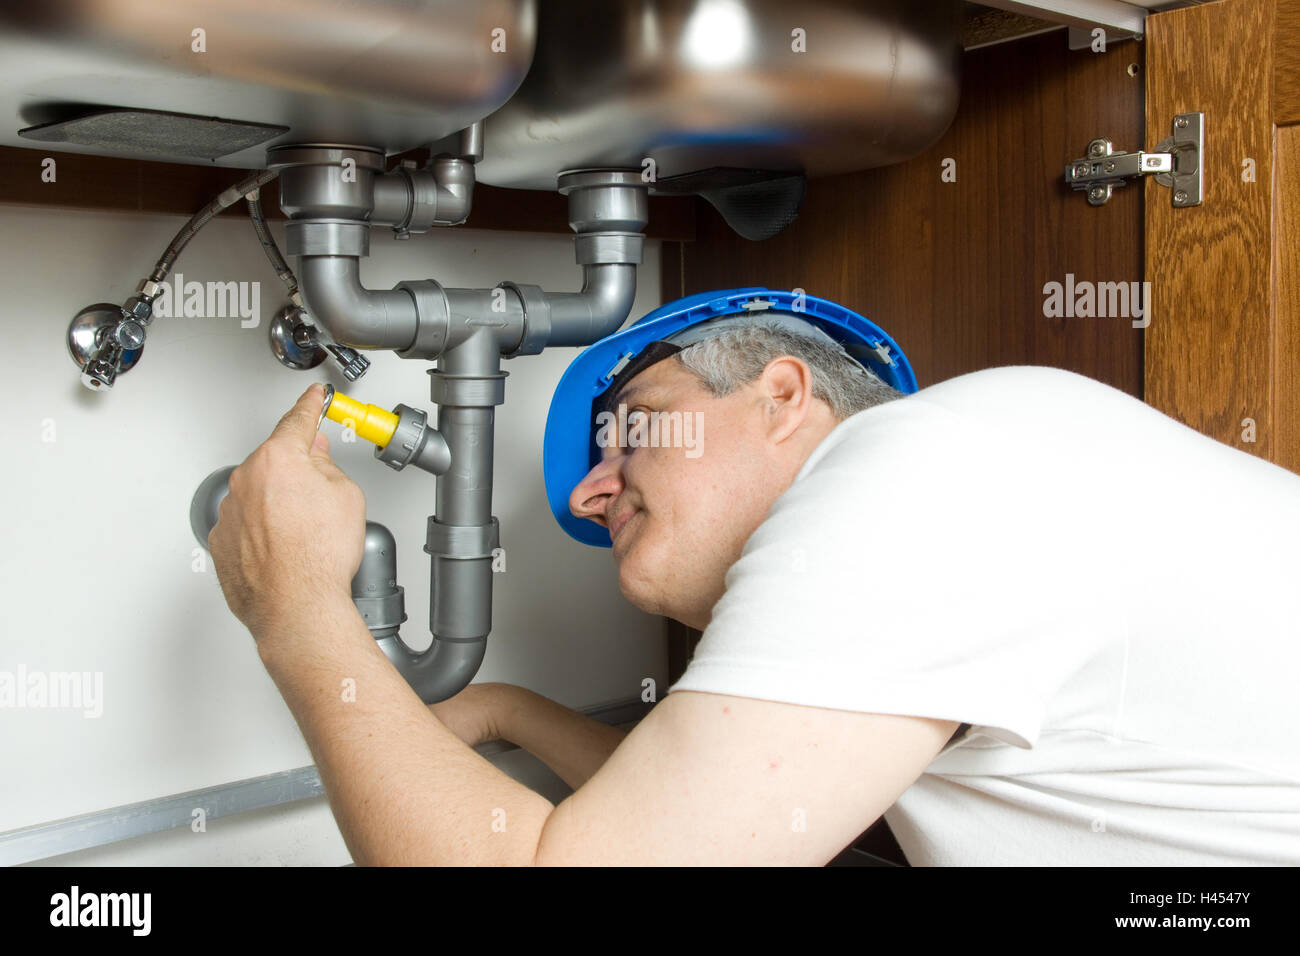 plumber at work in a kitchen fixing a sink - Stock Image